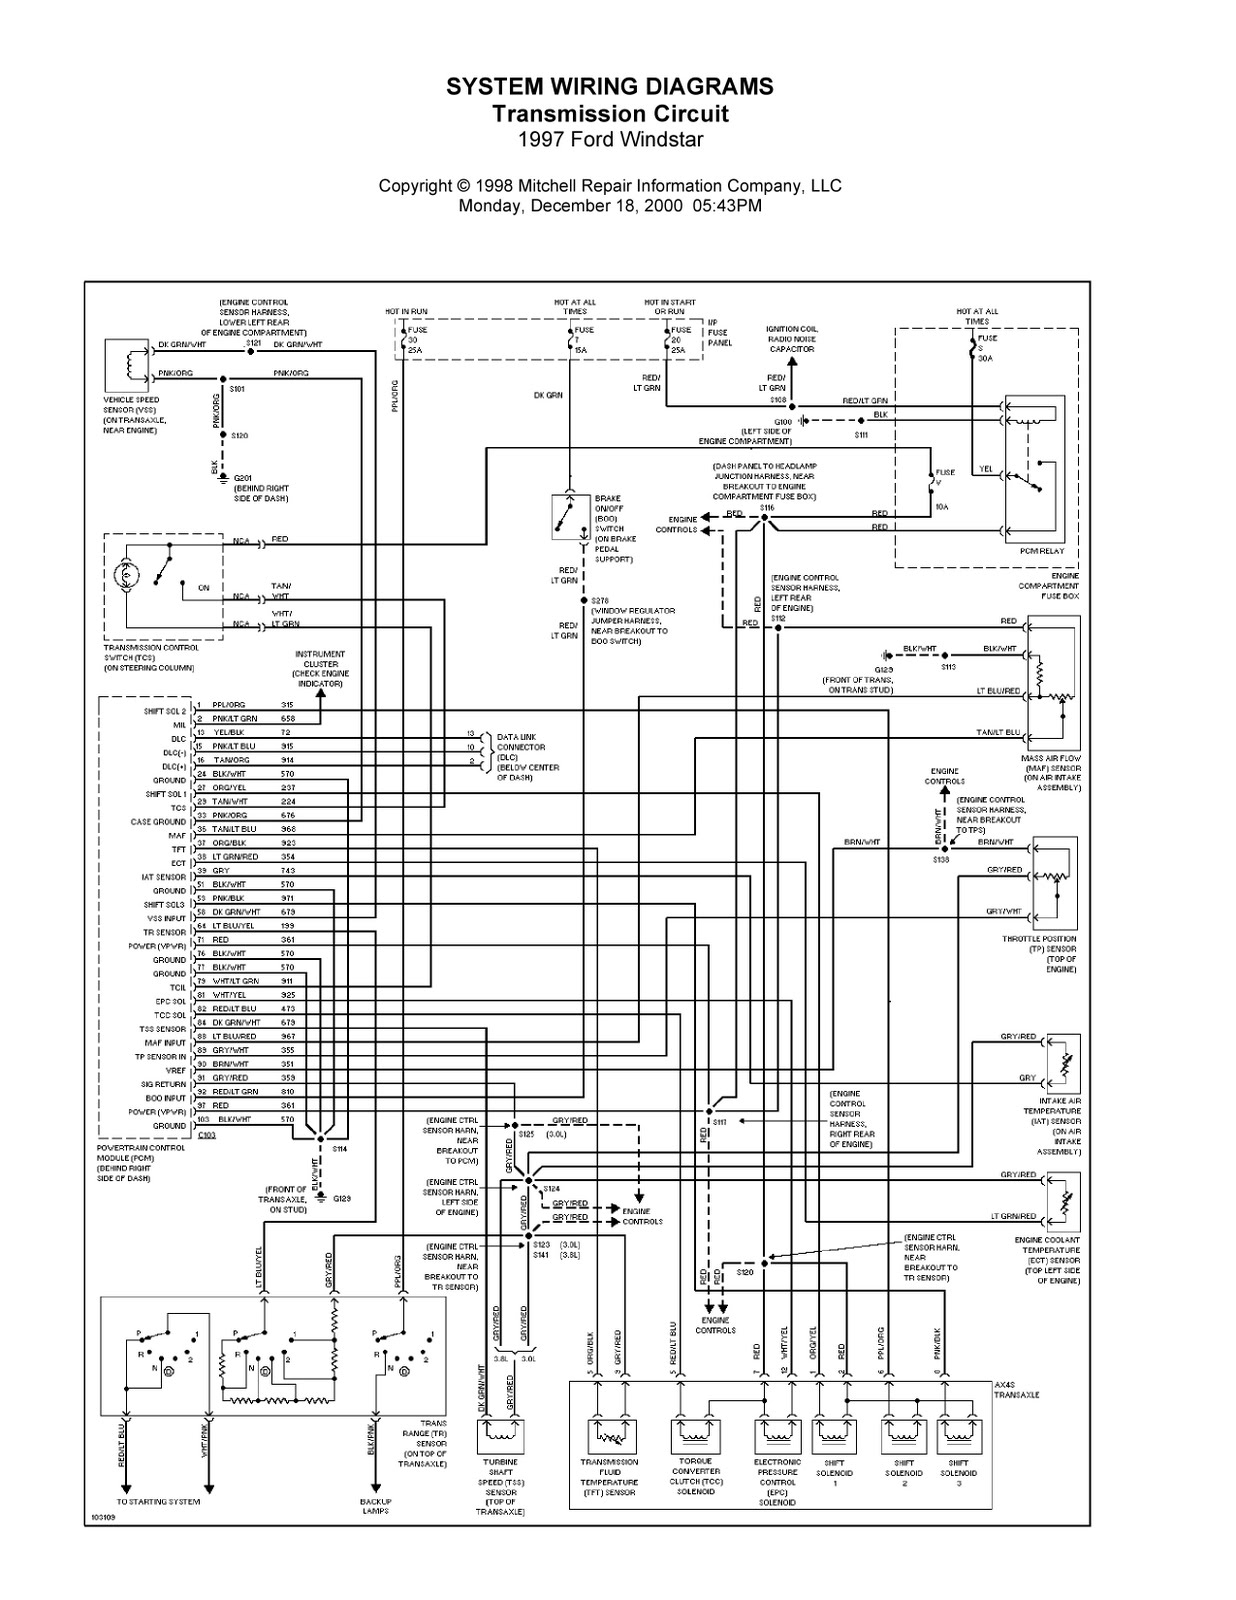 1997 Ford Windstar Complete System Wiring Diagrams 97 Ranger Windshield Washer Diagram Saturday May 28 2011 Herein The Schematic